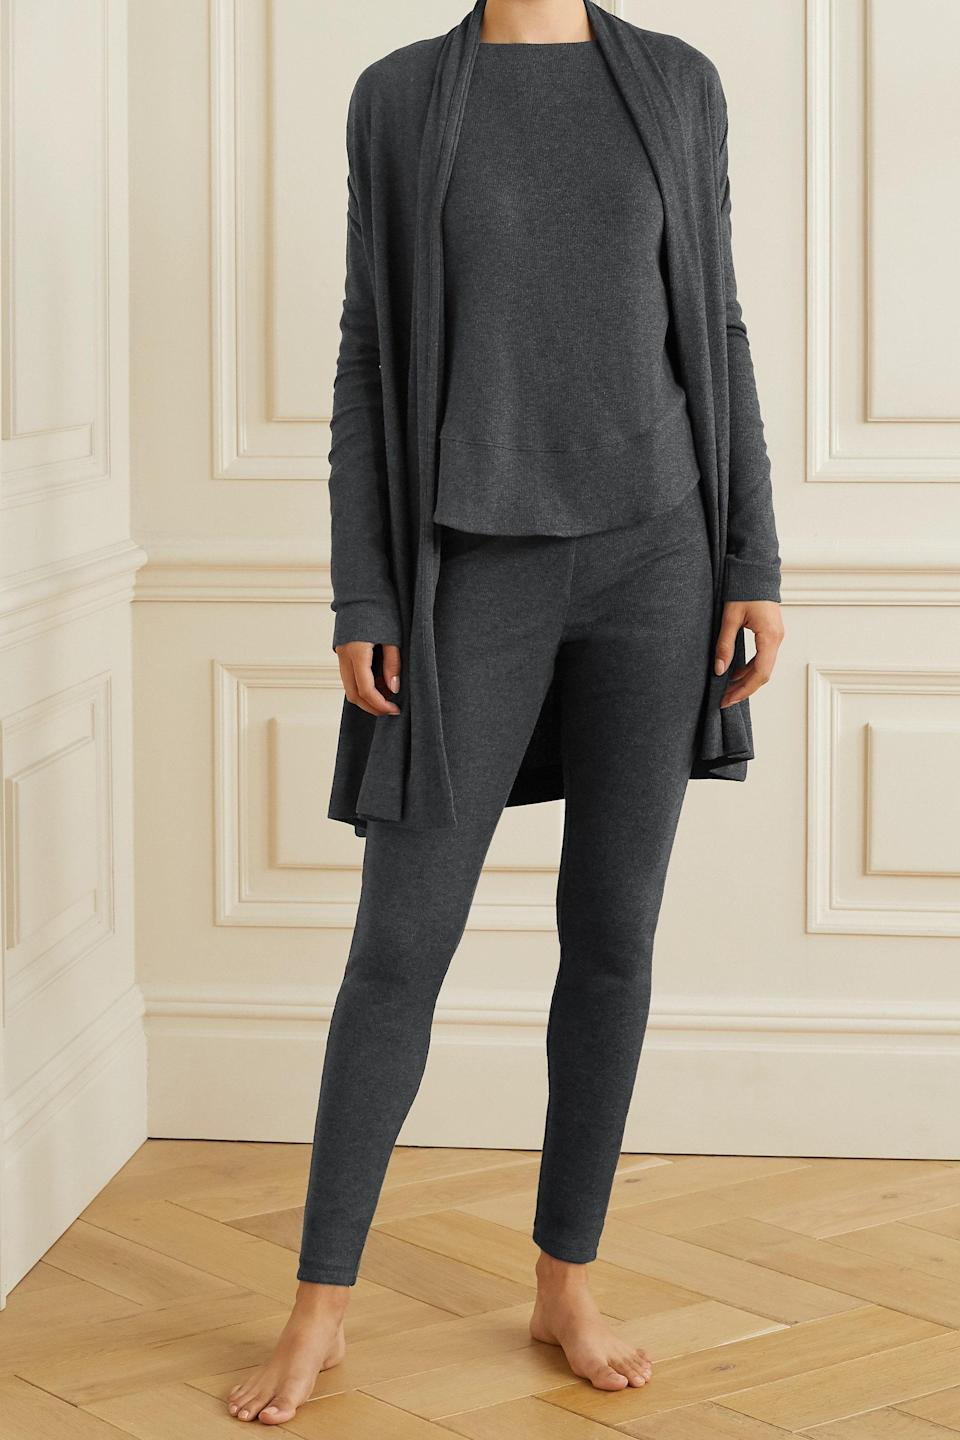 """Elevate her lounge look with this super soft set that's chic enough for an early morning walk. $370, Net-A-Porter. <a href=""""https://www.net-a-porter.com/en-us/shop/product/skin/ribbed-stretch-pima-cotton-and-modal-blend-travel-set/1288679"""" rel=""""nofollow noopener"""" target=""""_blank"""" data-ylk=""""slk:Get it now!"""" class=""""link rapid-noclick-resp"""">Get it now!</a>"""